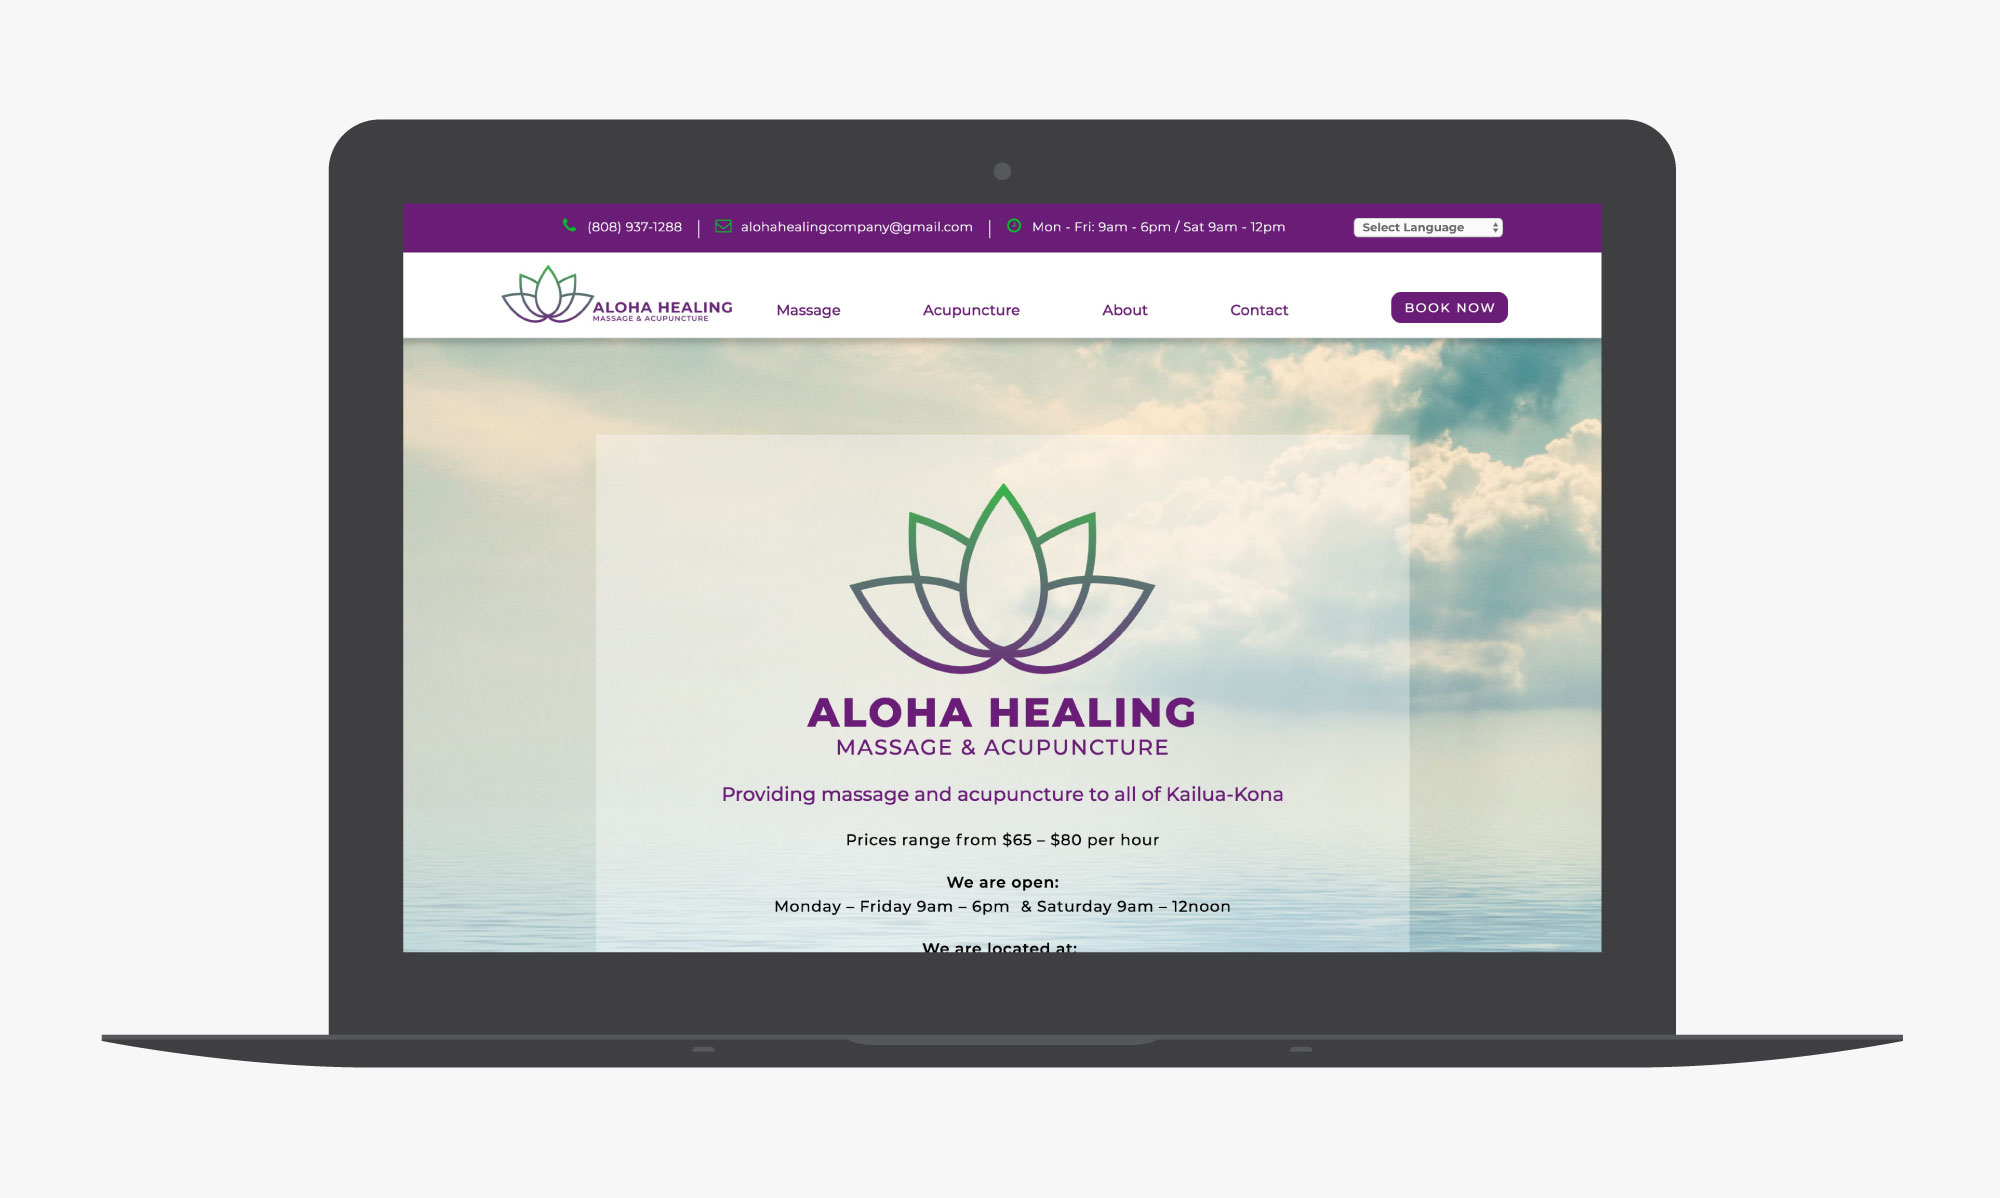 giant is aloha healing massage and accupunture website samples 02